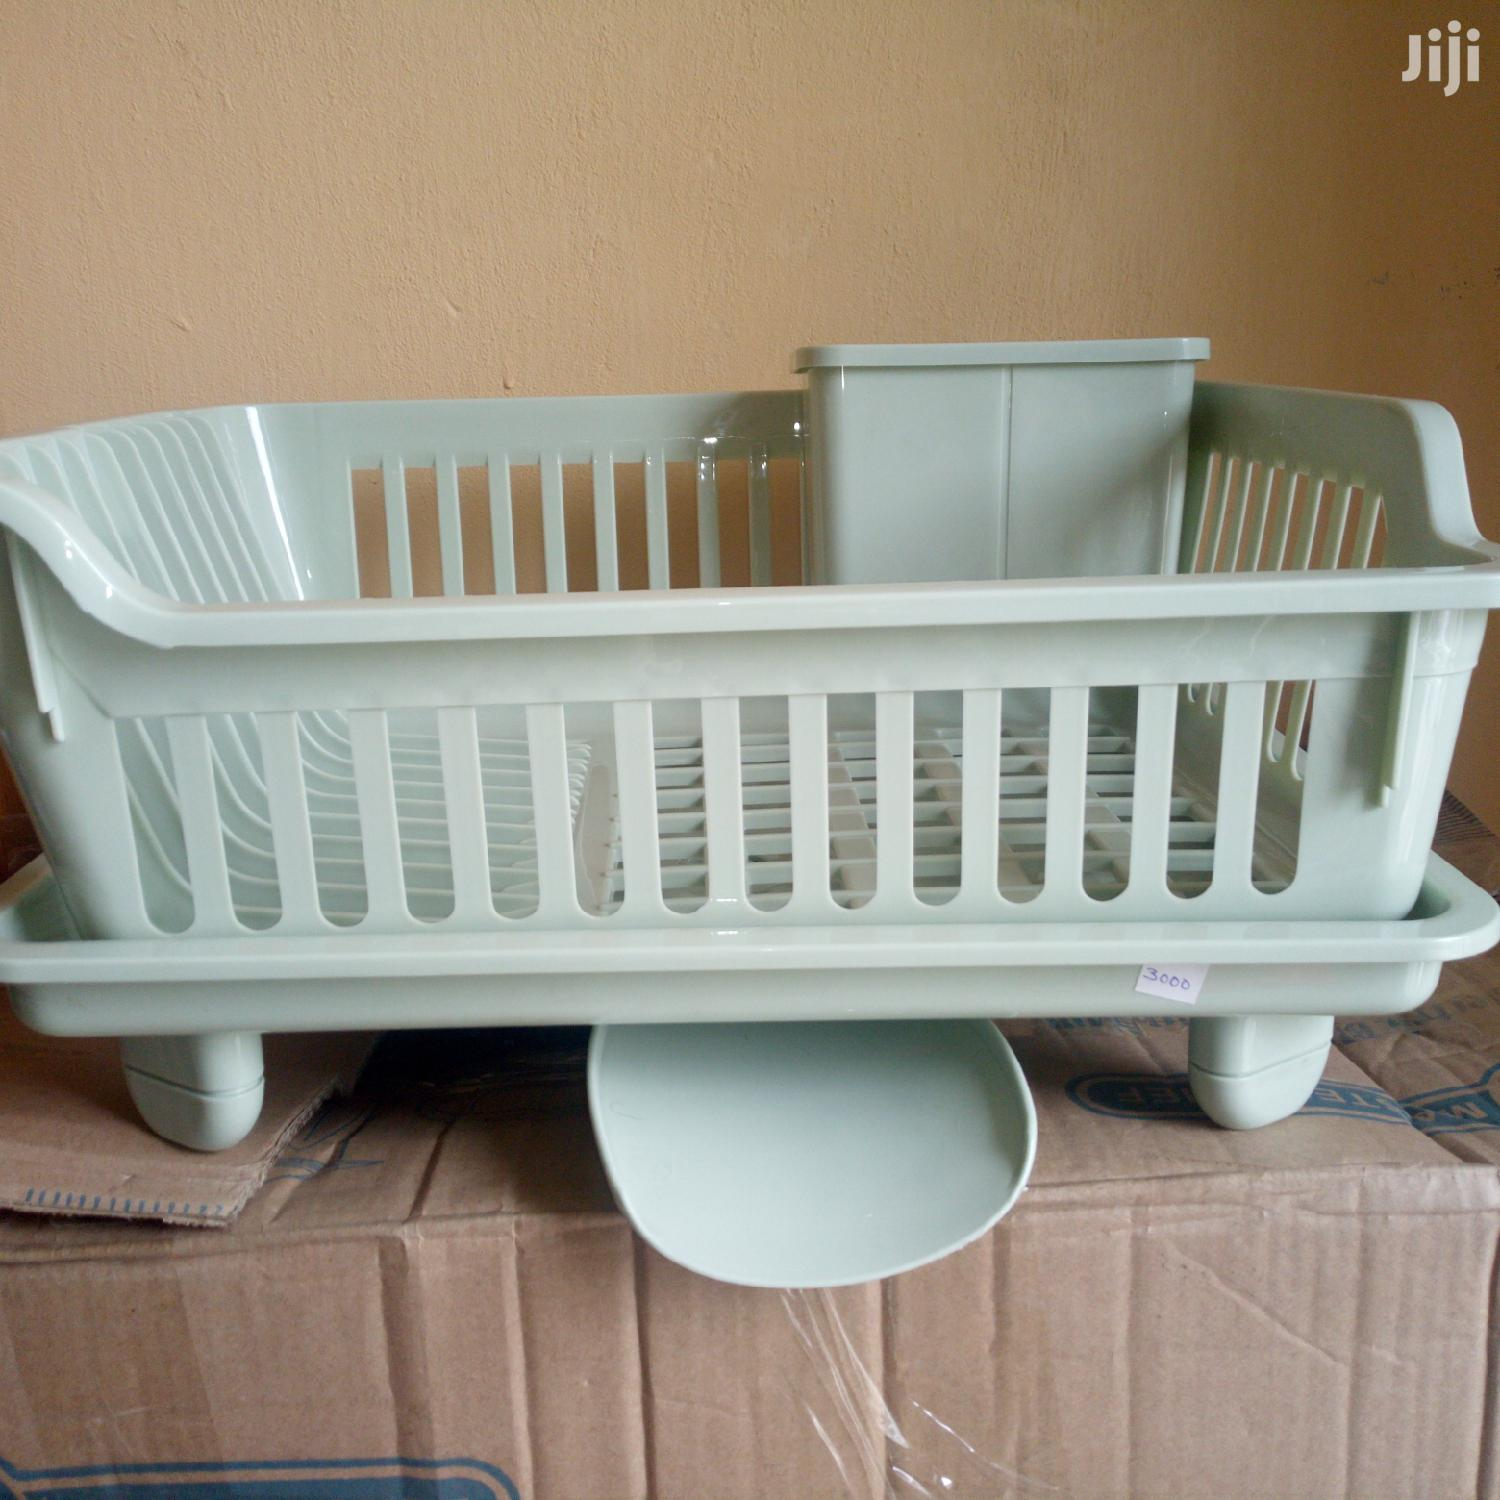 Plate Rack | Kitchen & Dining for sale in Mushin, Lagos State, Nigeria